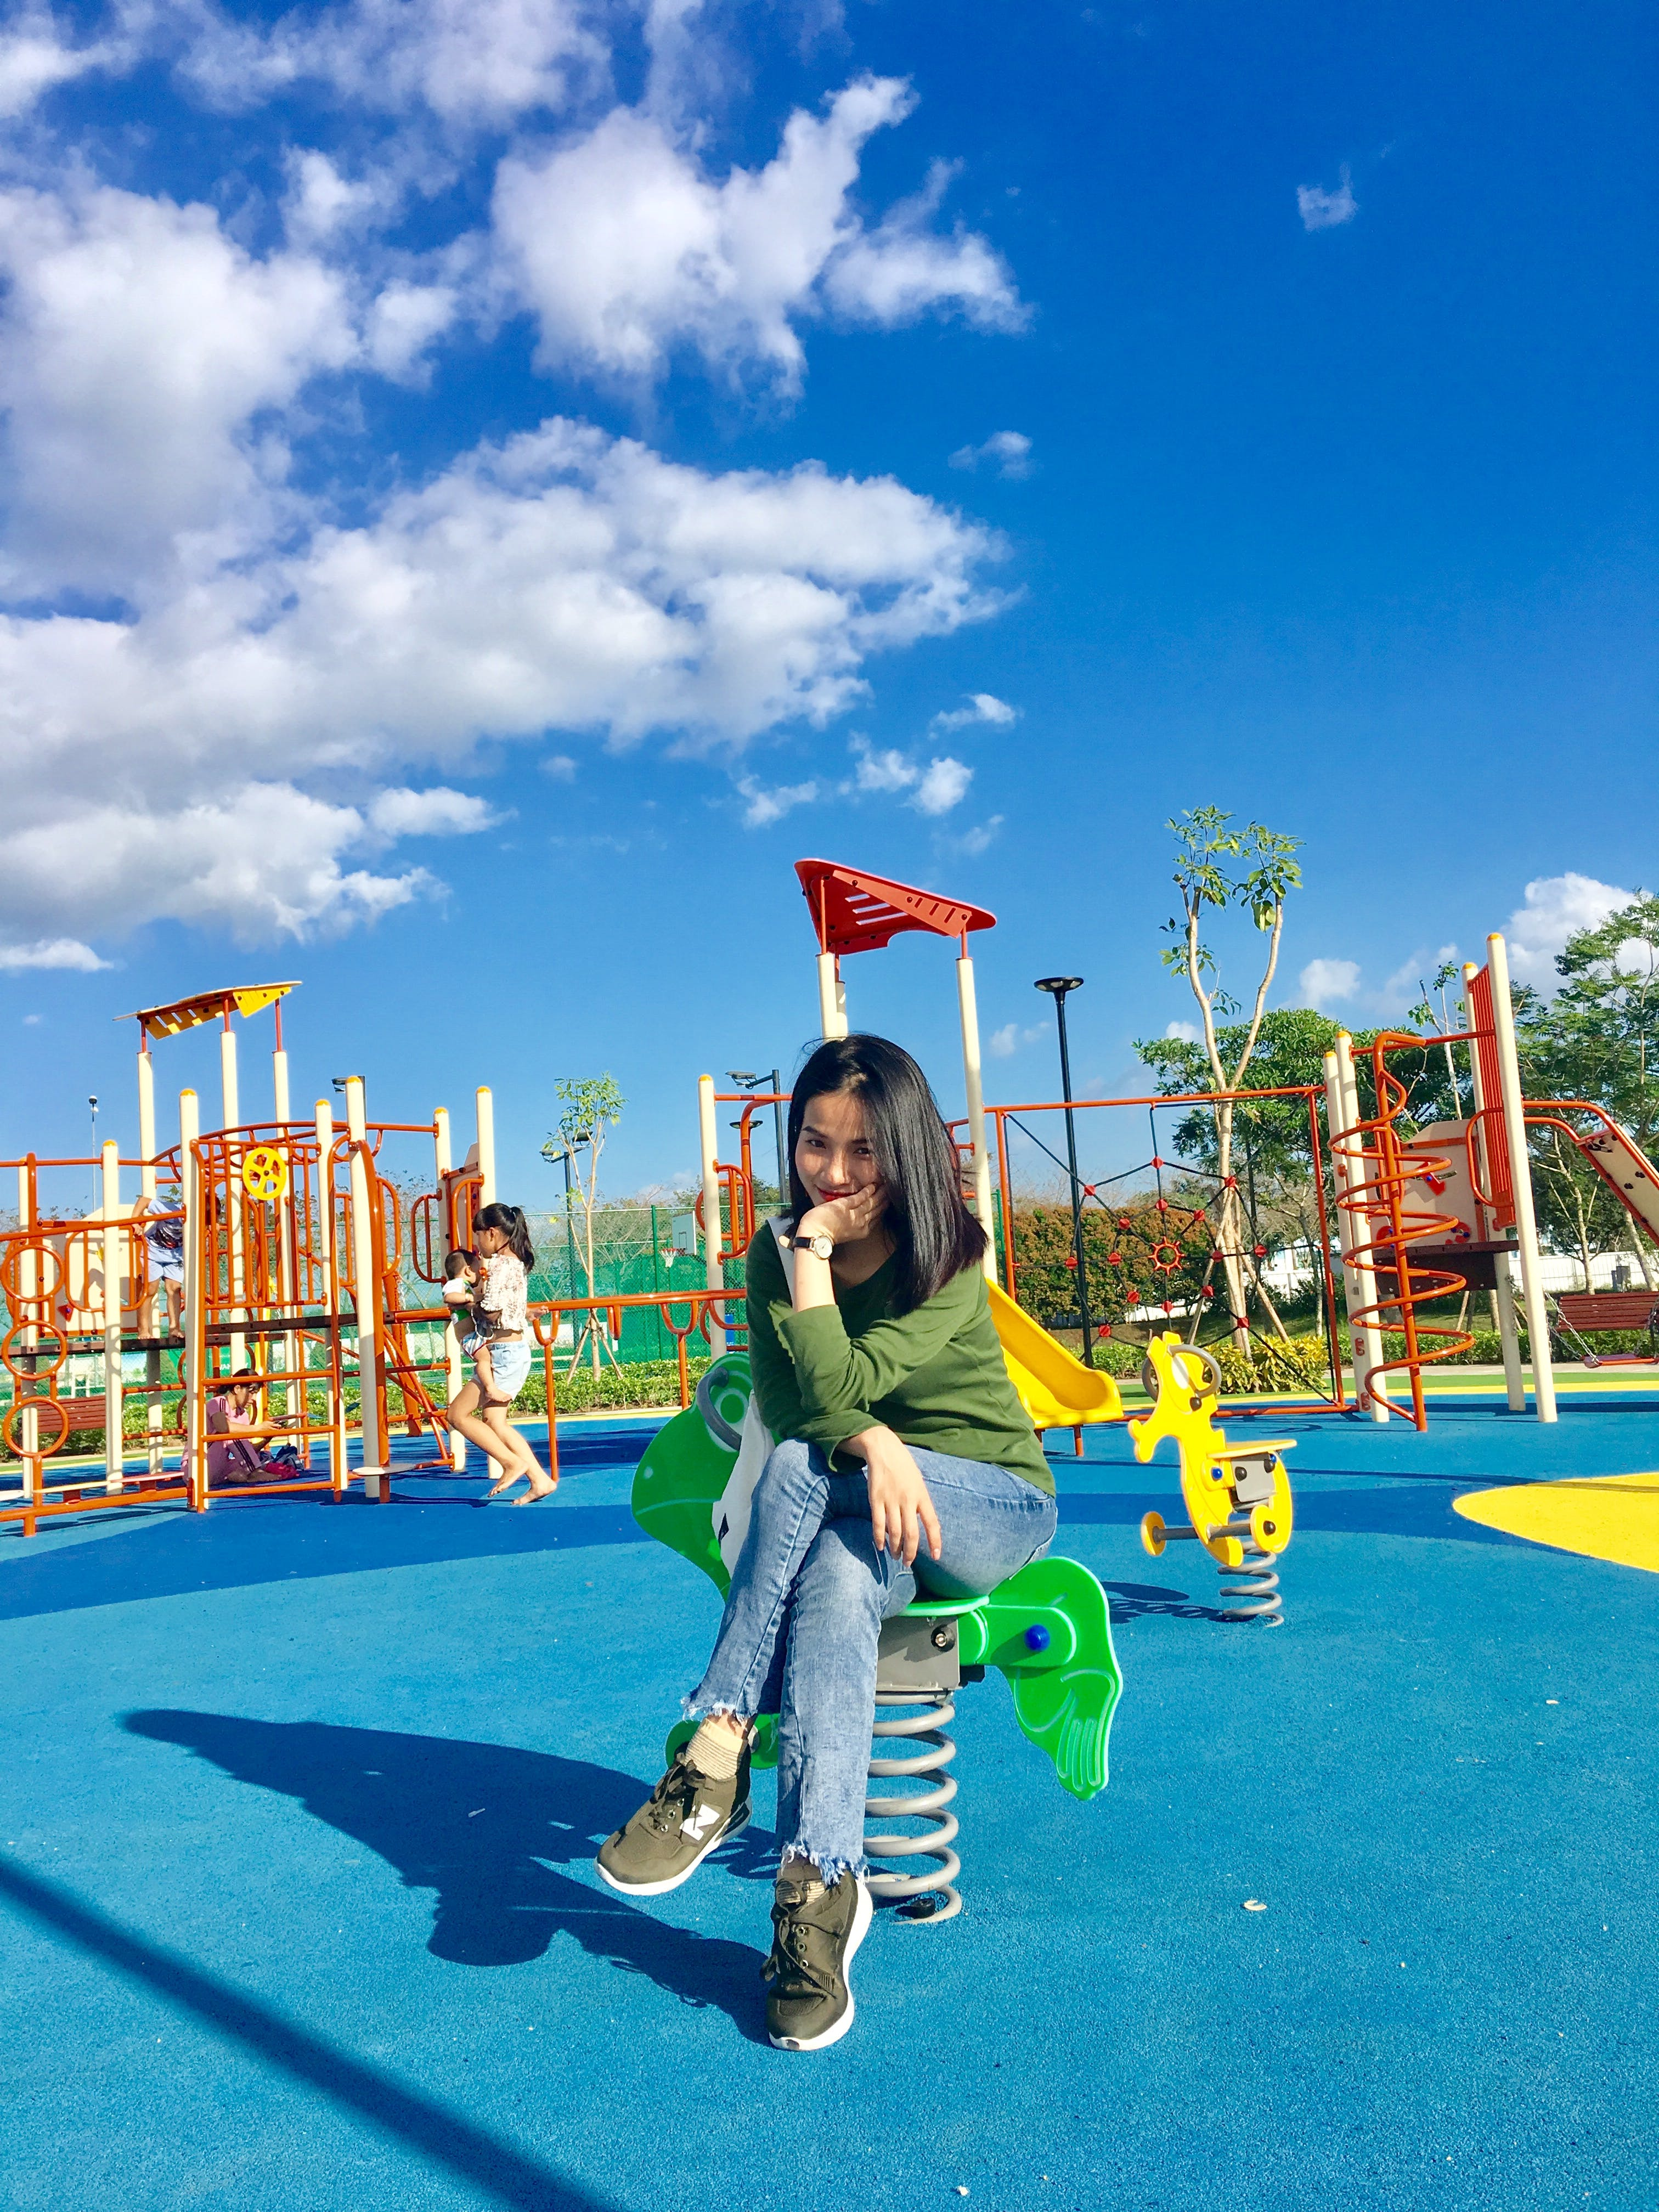 Woman At The Playground